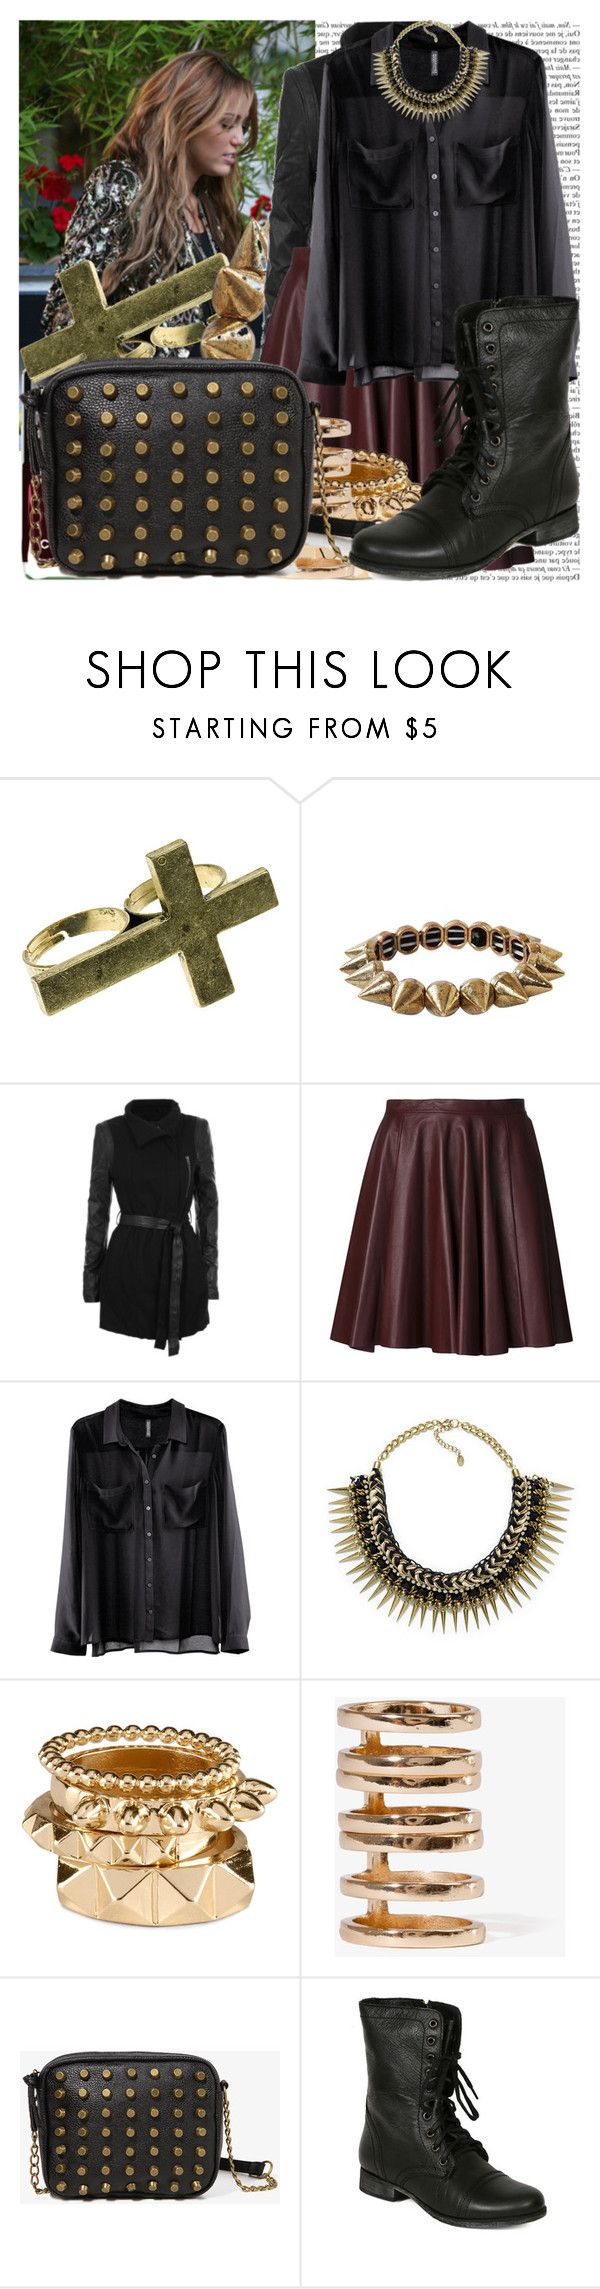 """""""heavy metal christmas."""" by valerieking ❤ liked on Polyvore featuring Cyrus, Chanel, Club Manhattan, Humble Chic, Gestuz, Beckley by Melissa, H&M, Zara, Forever 21 and Steve Madden"""